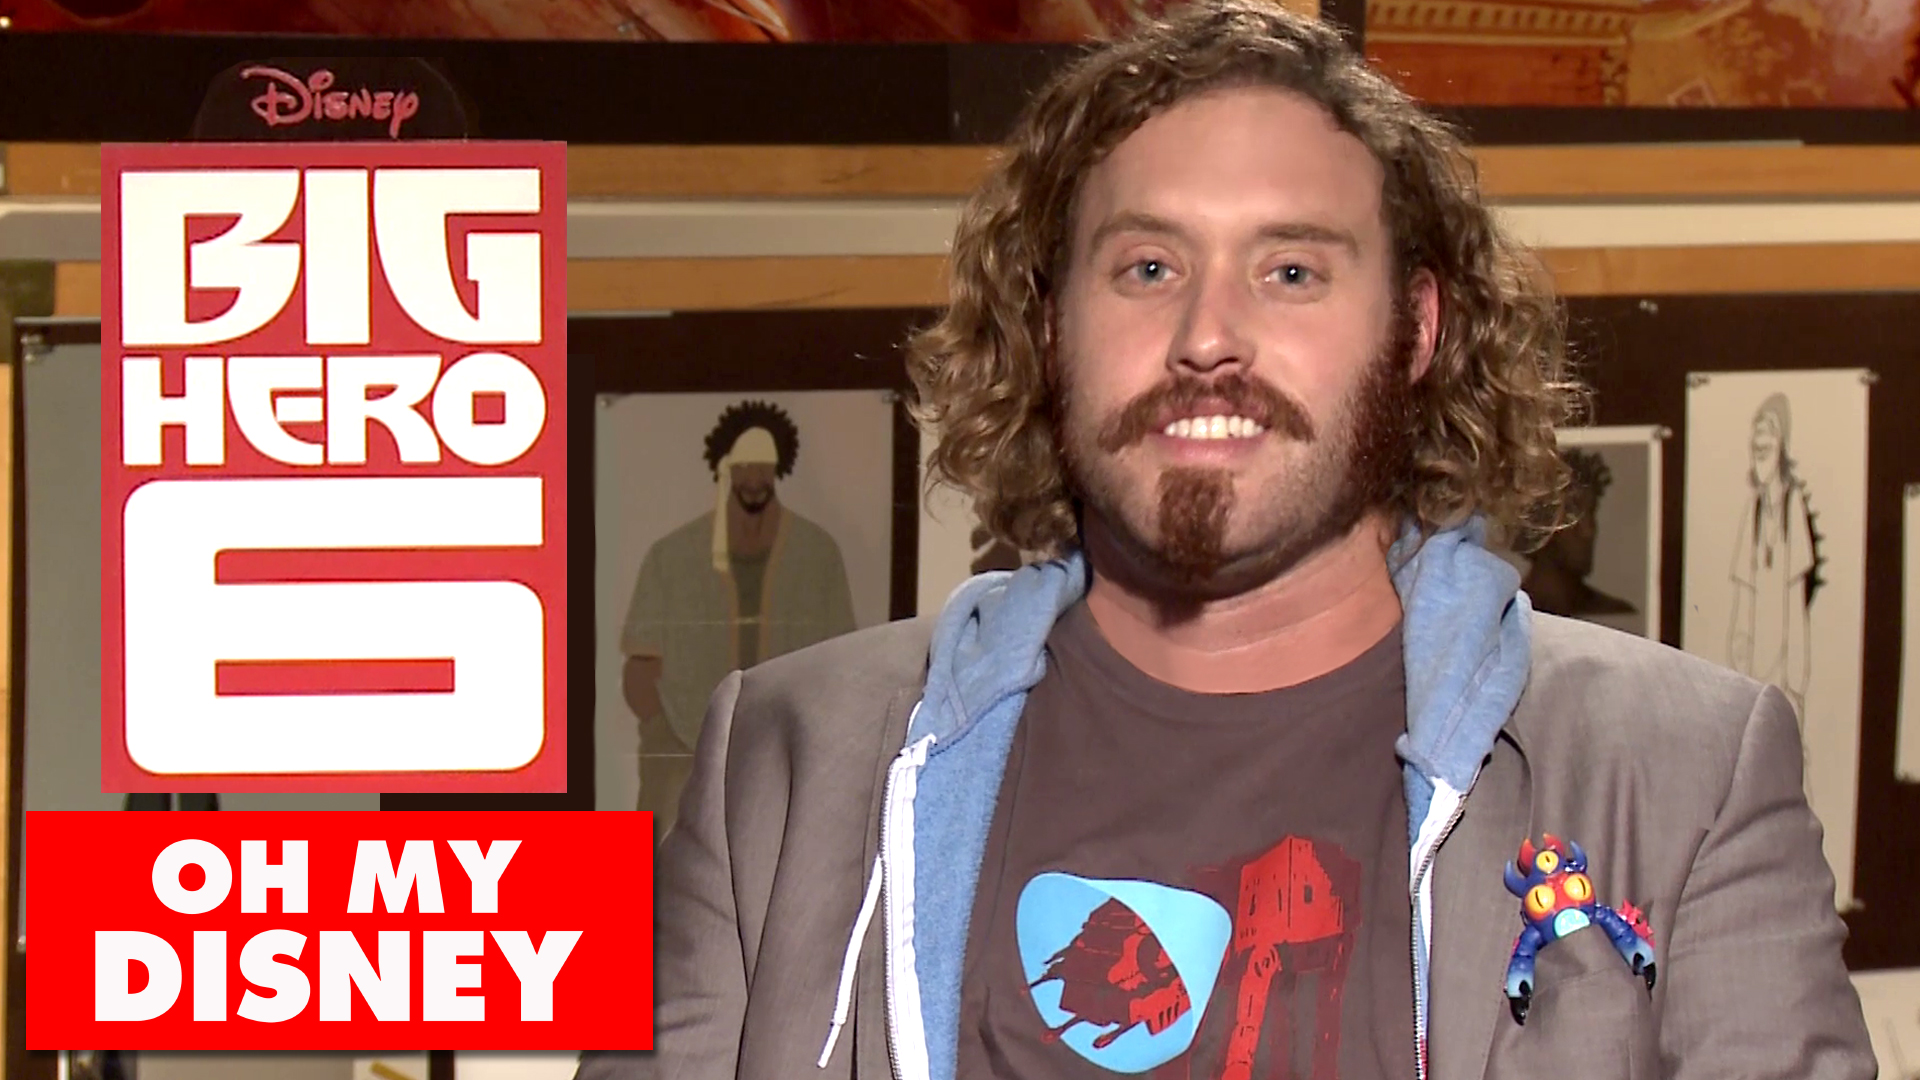 The Nickname Game with T.J. Miller - Oh My Disney